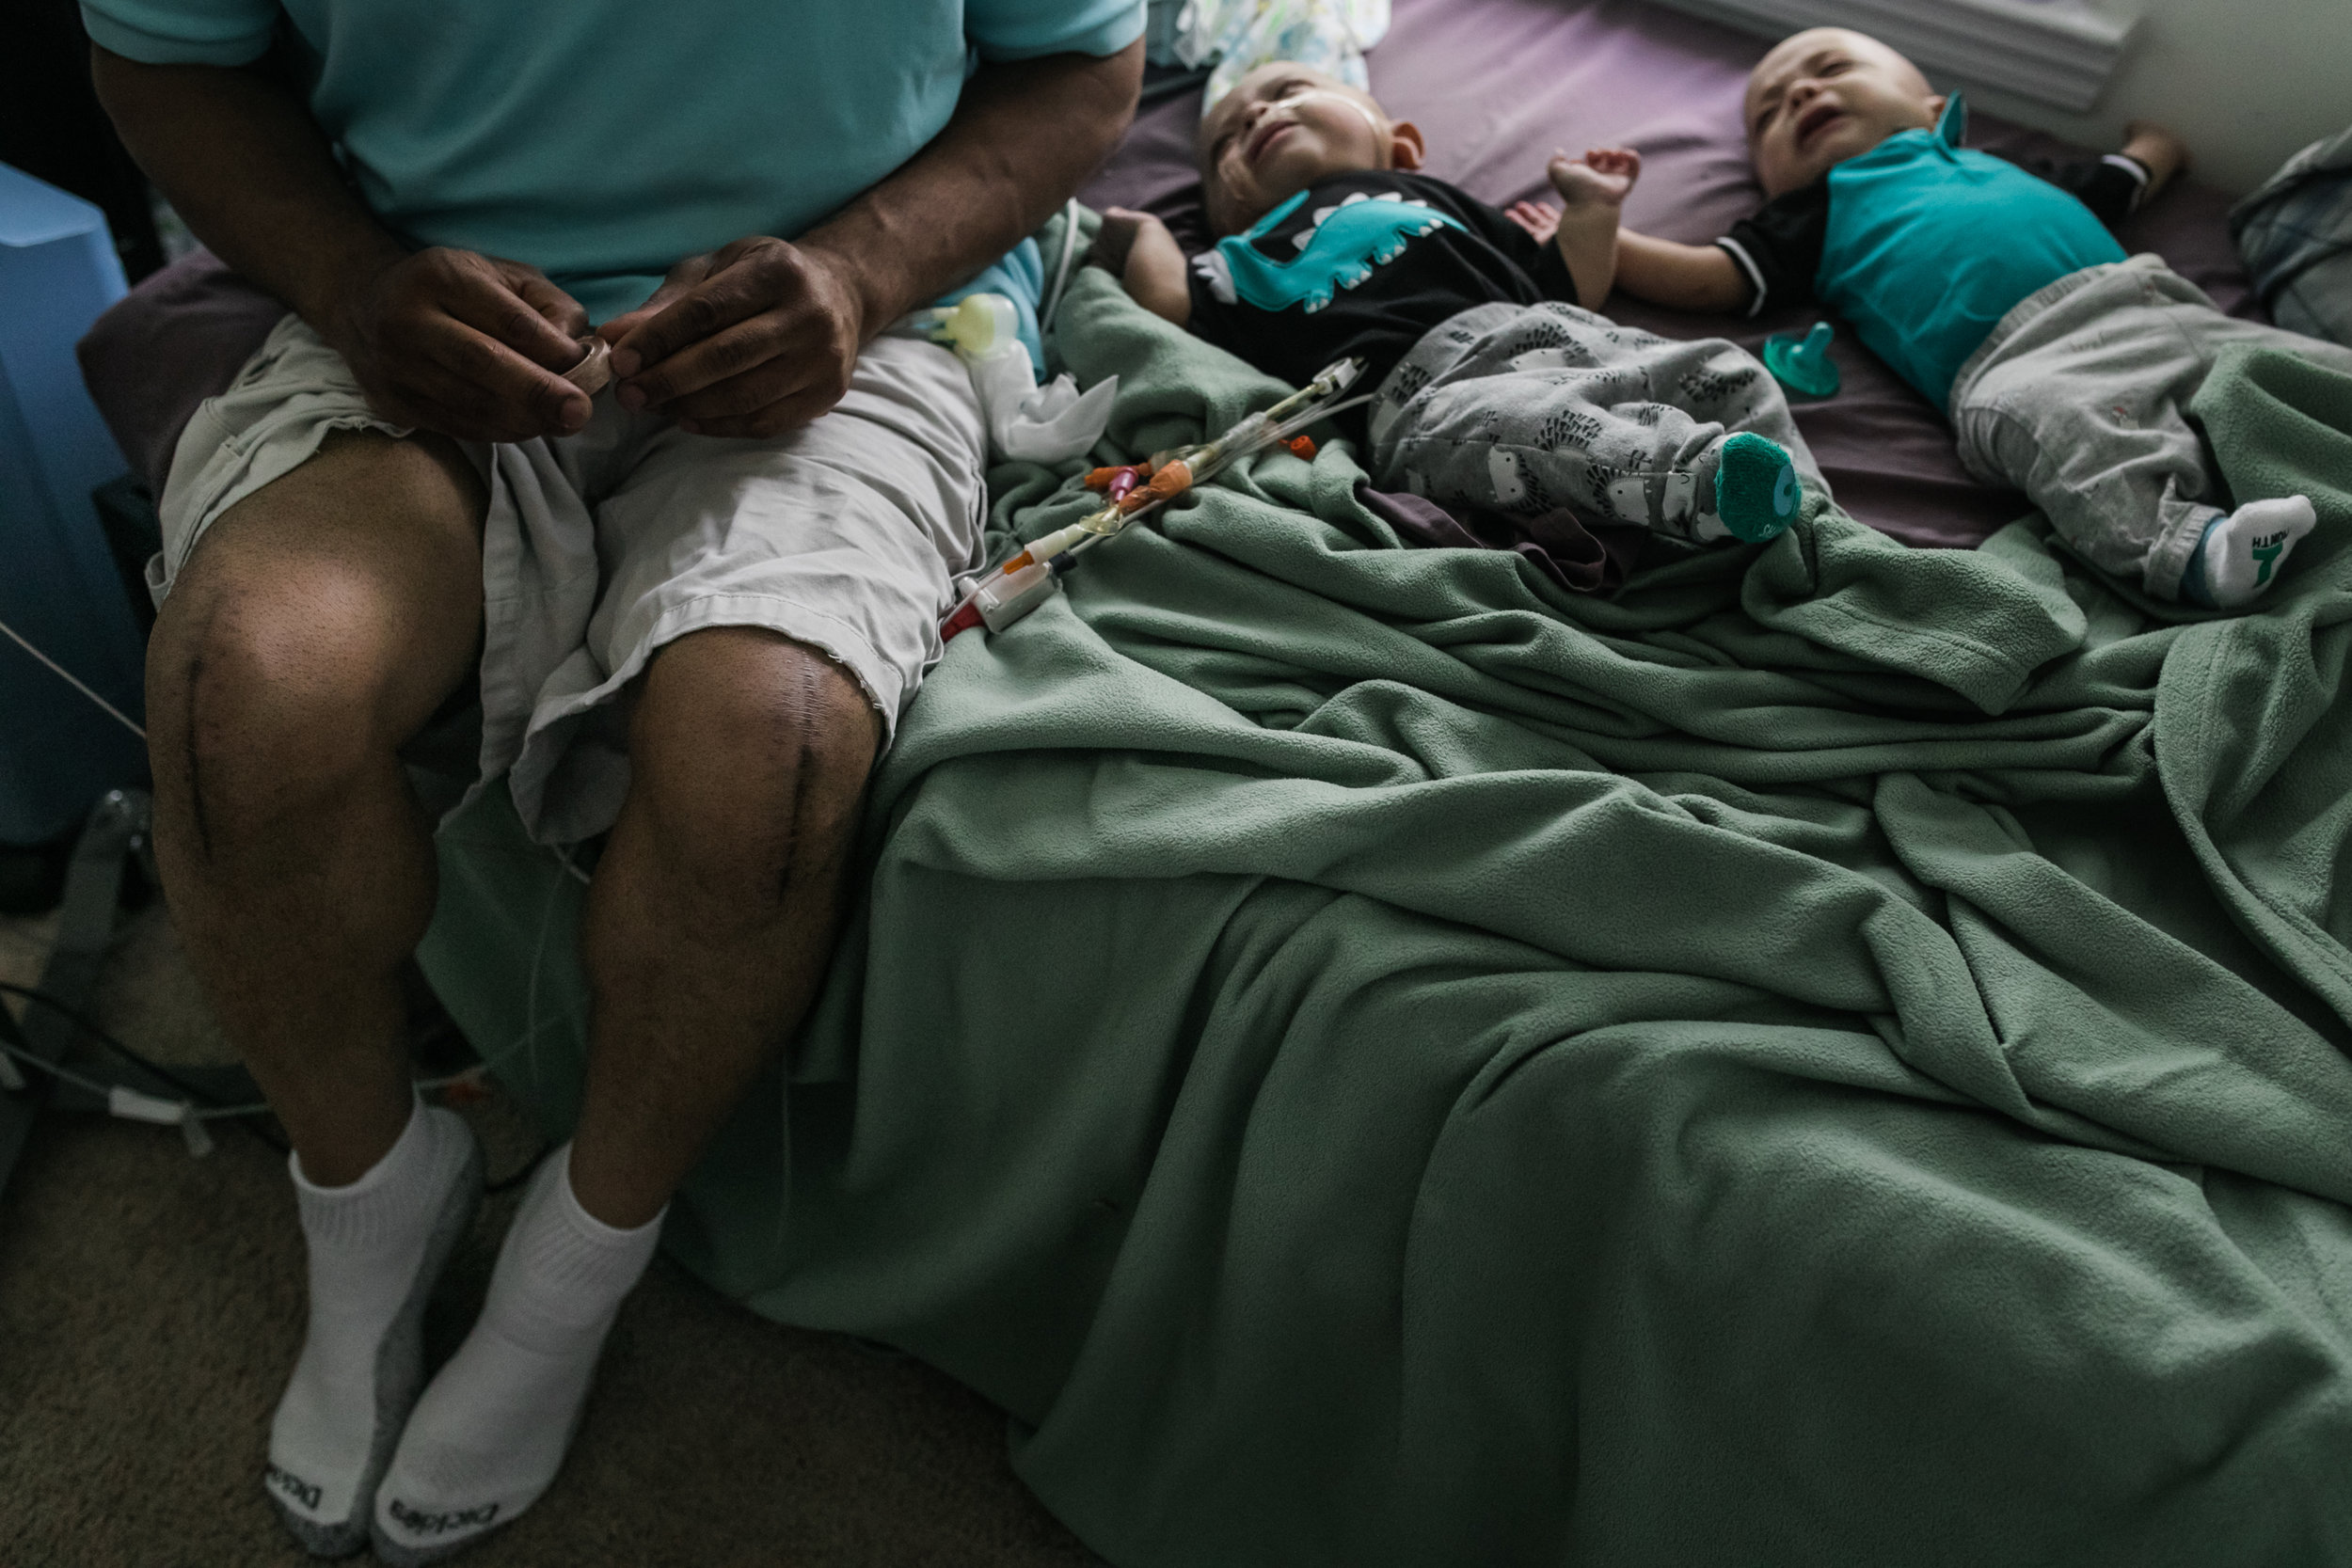 a man with scars on his knees sits on a bed near his twin boys